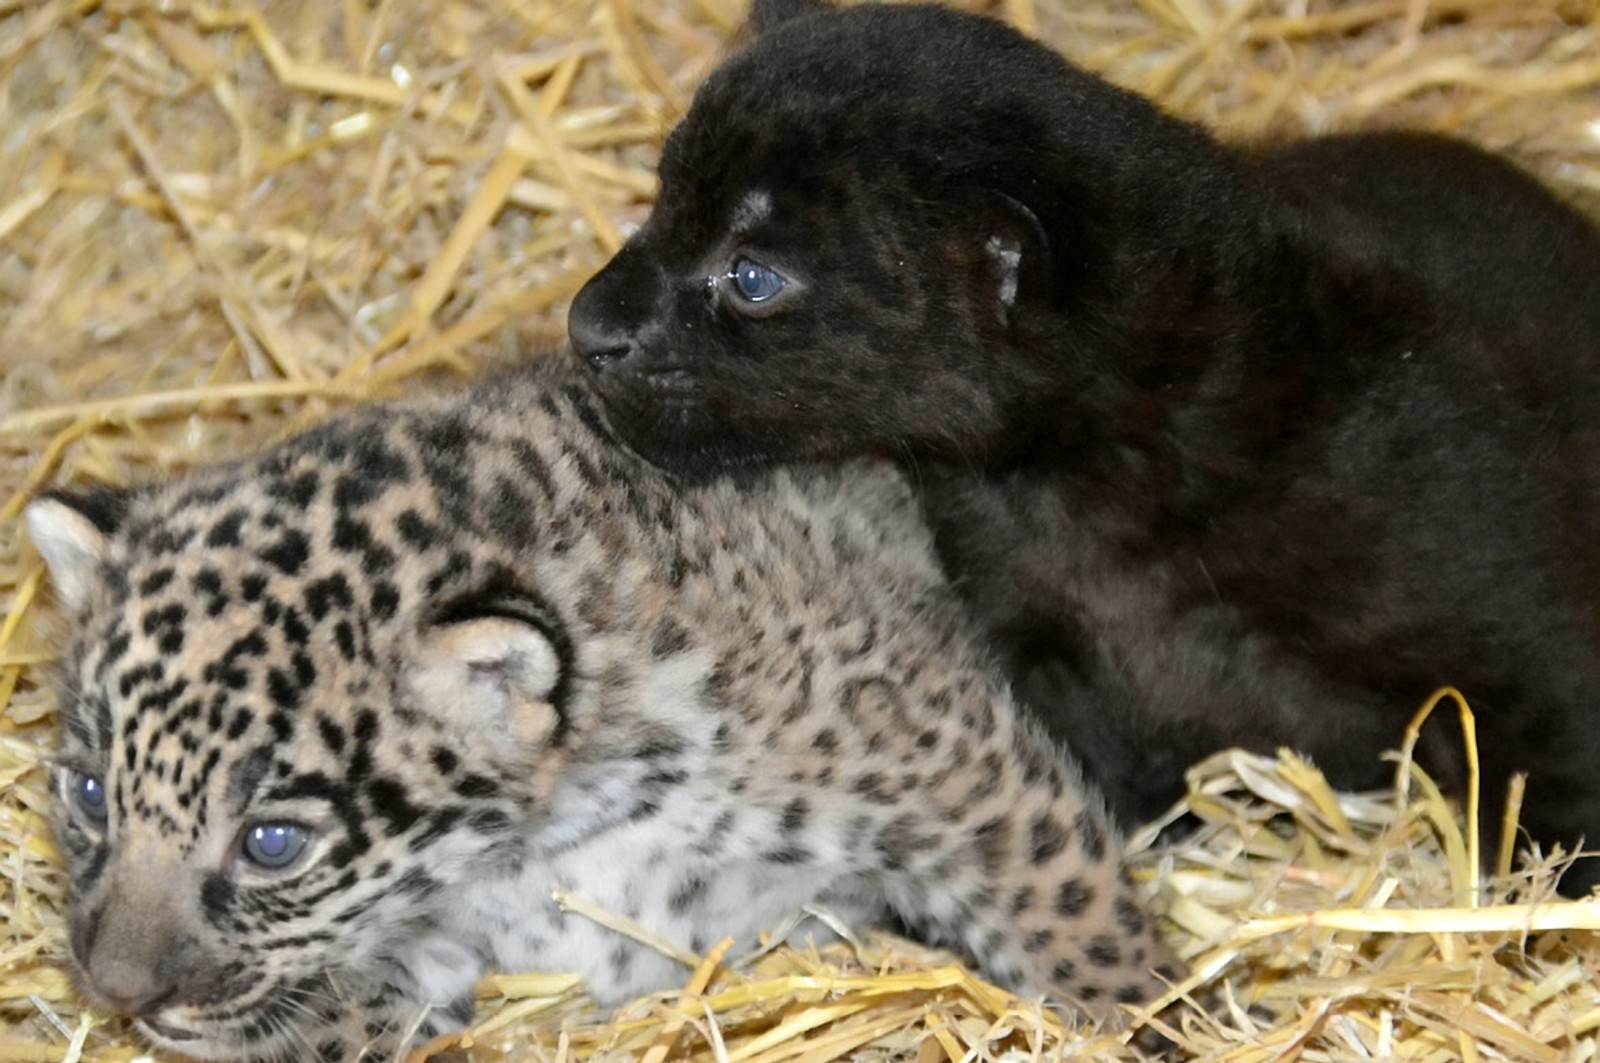 A pair of adorable baby jaguars have been born at a wildlife park